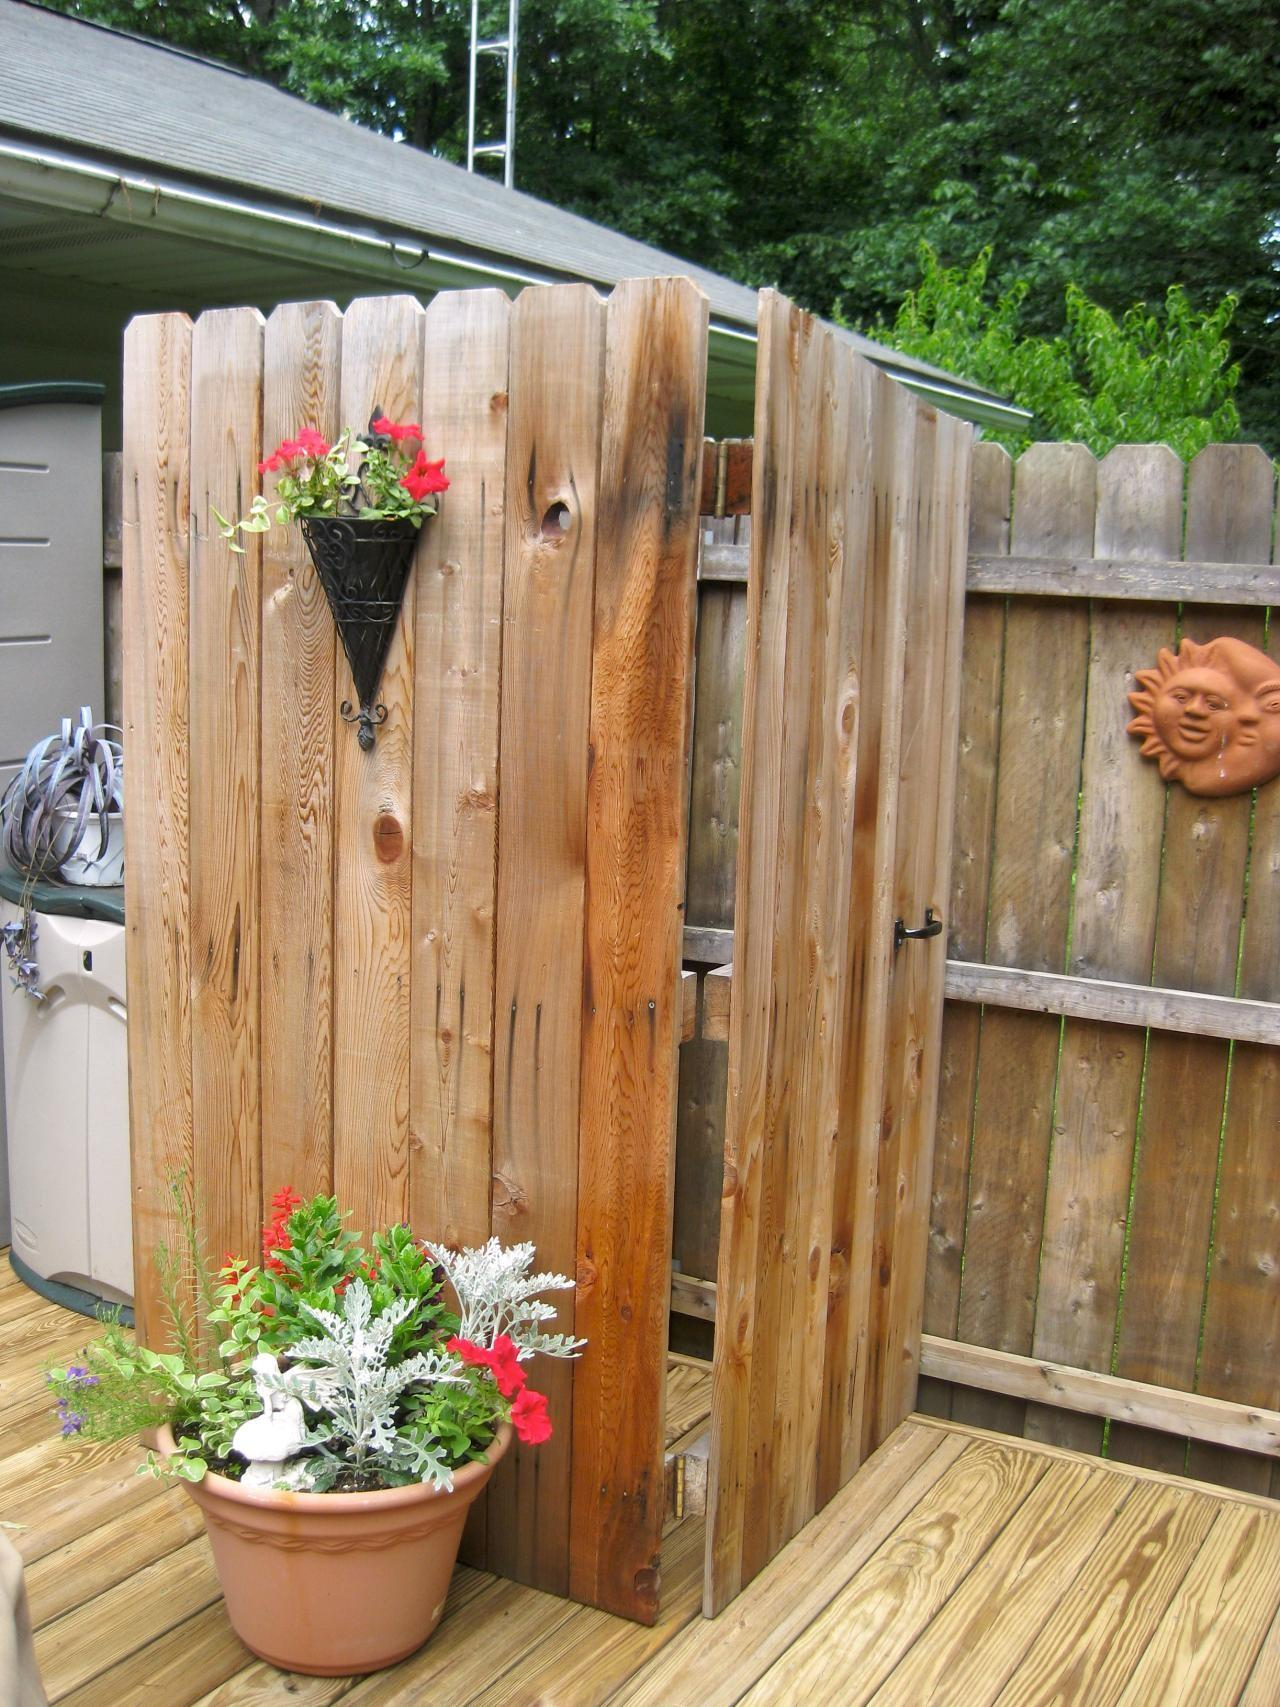 Design Ideas Outdoor Showers Tubs Spaces